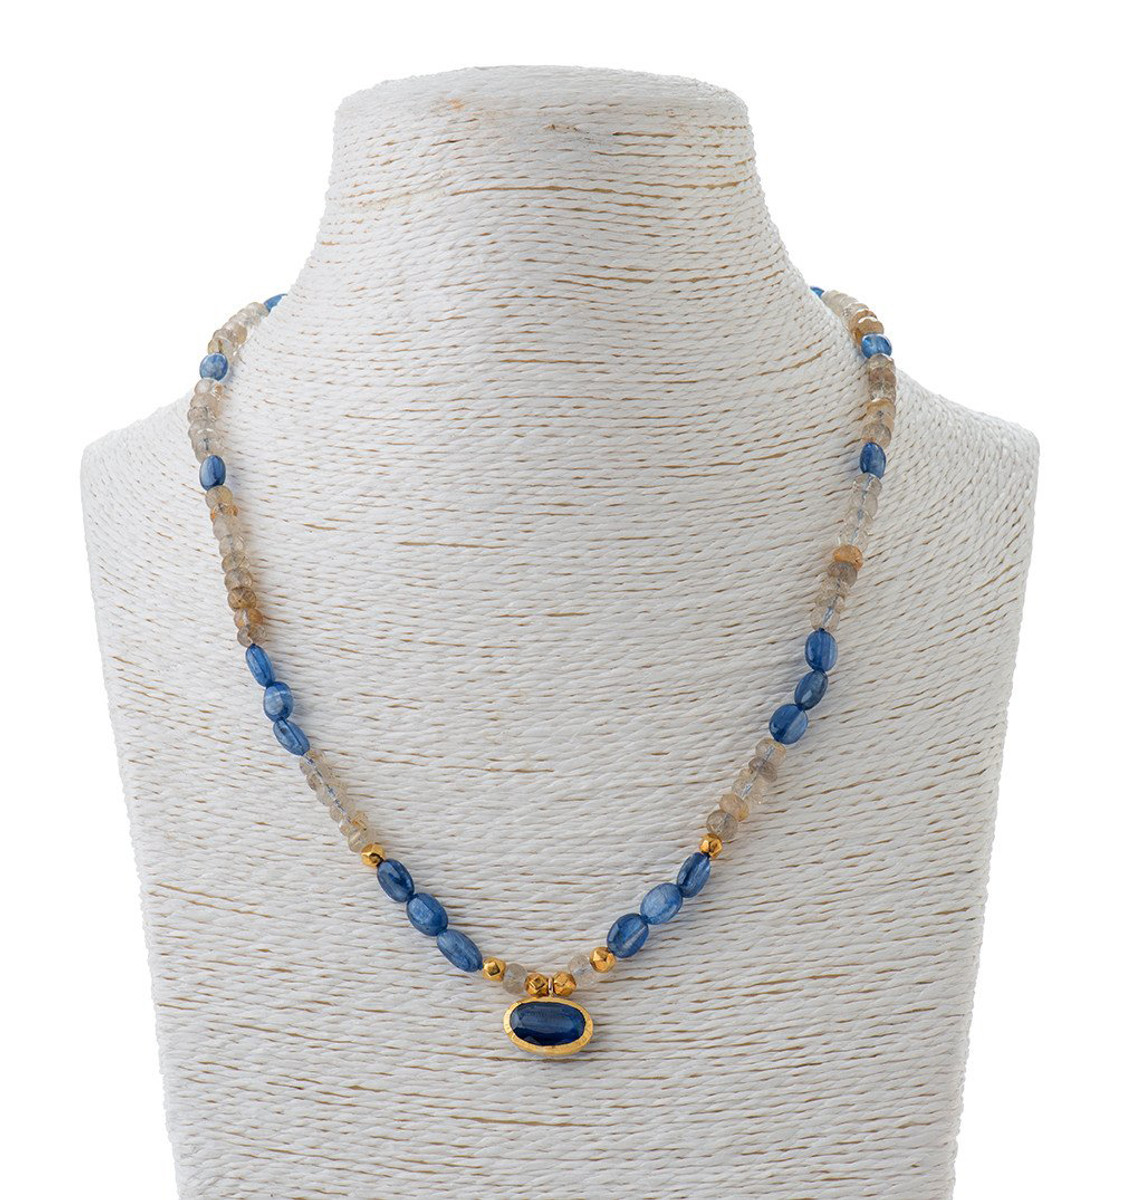 Dancing with the Stars Necklace by Nava Zahavi - New Arrival